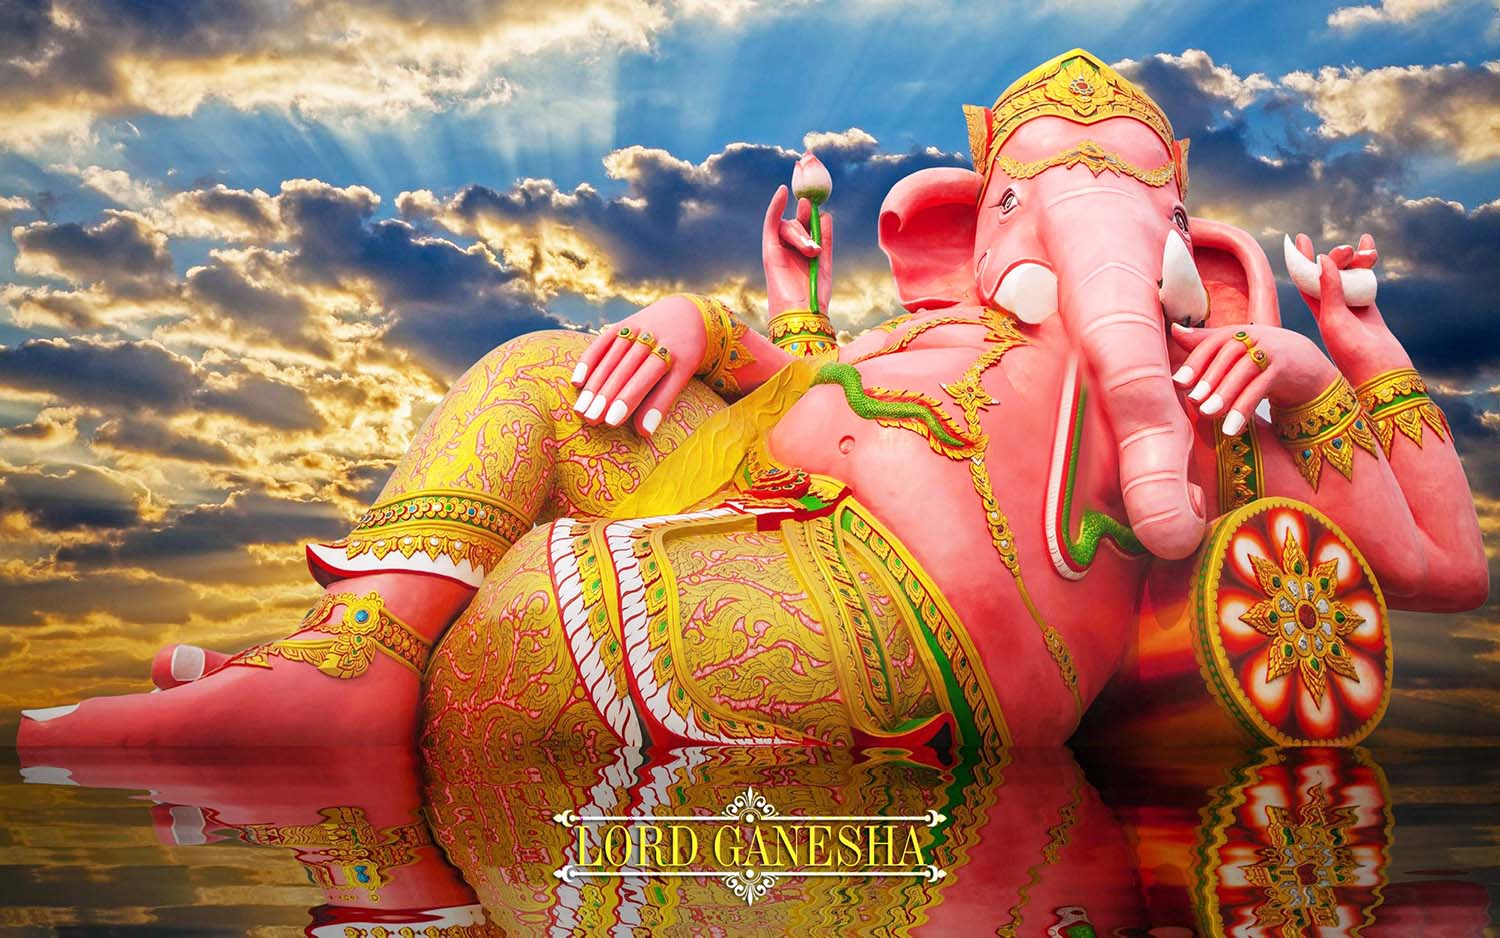 Giant God Vinayaka lying wallpaper!